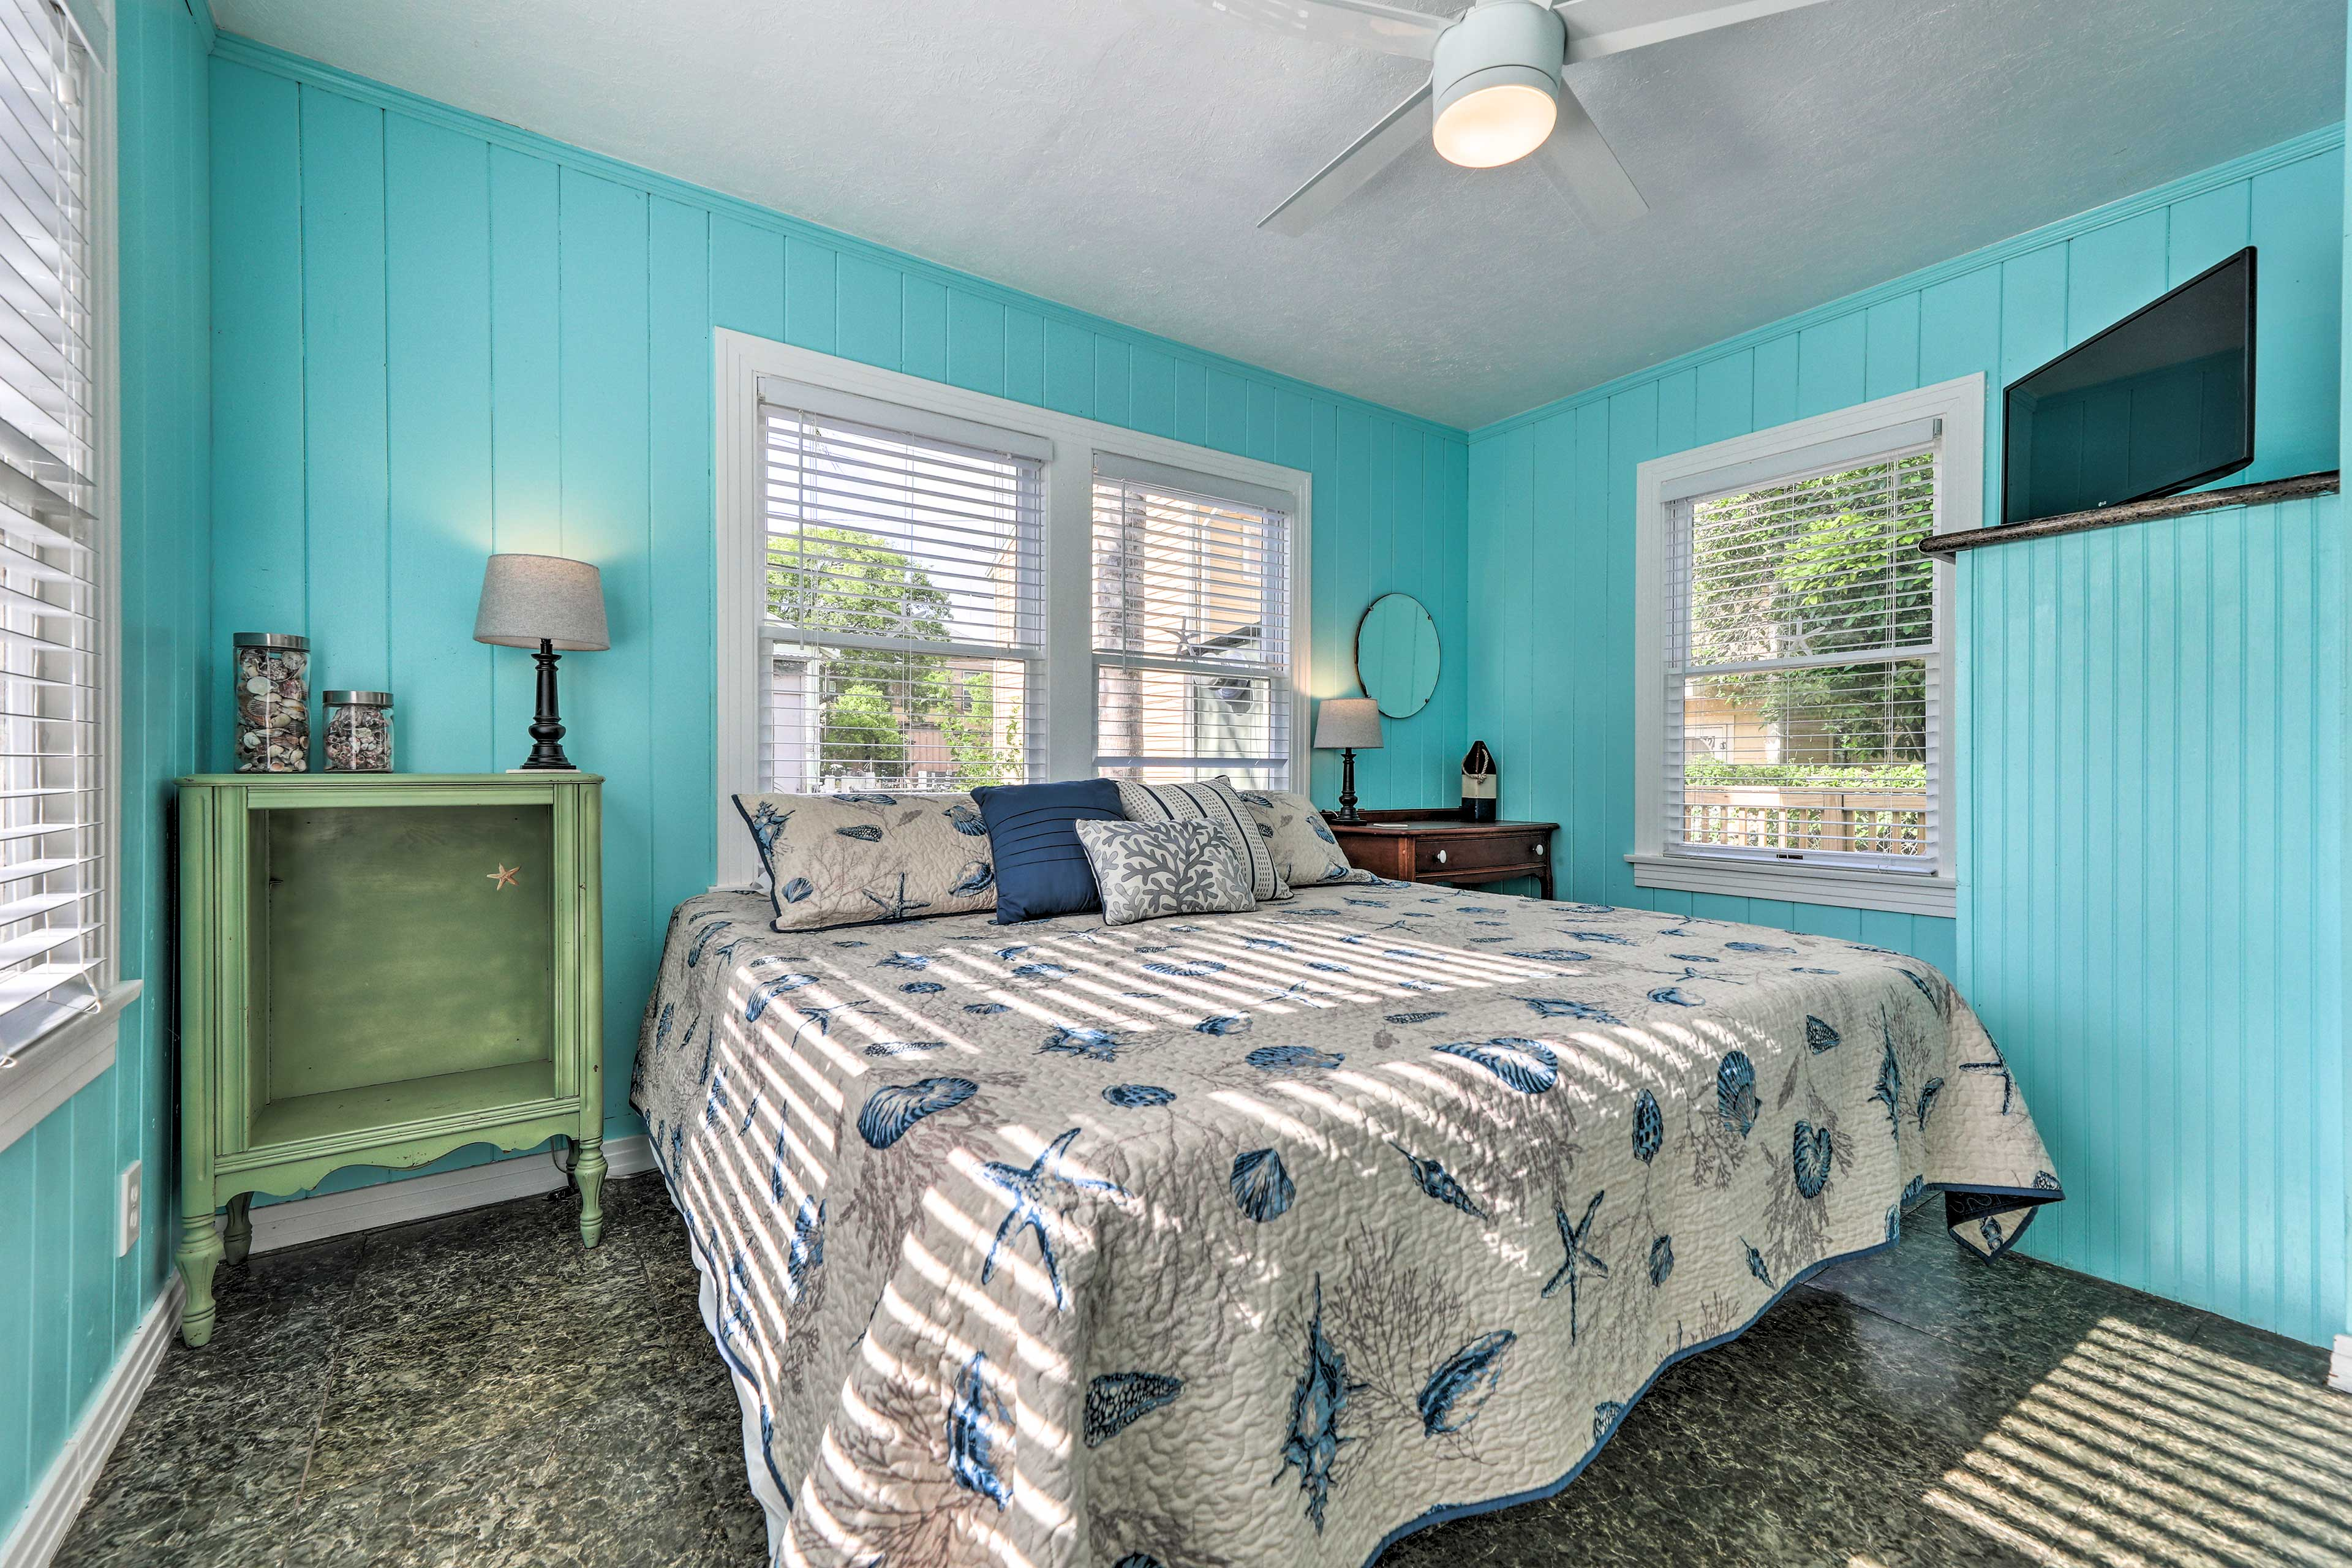 The master bedroom features a king-sized bed.